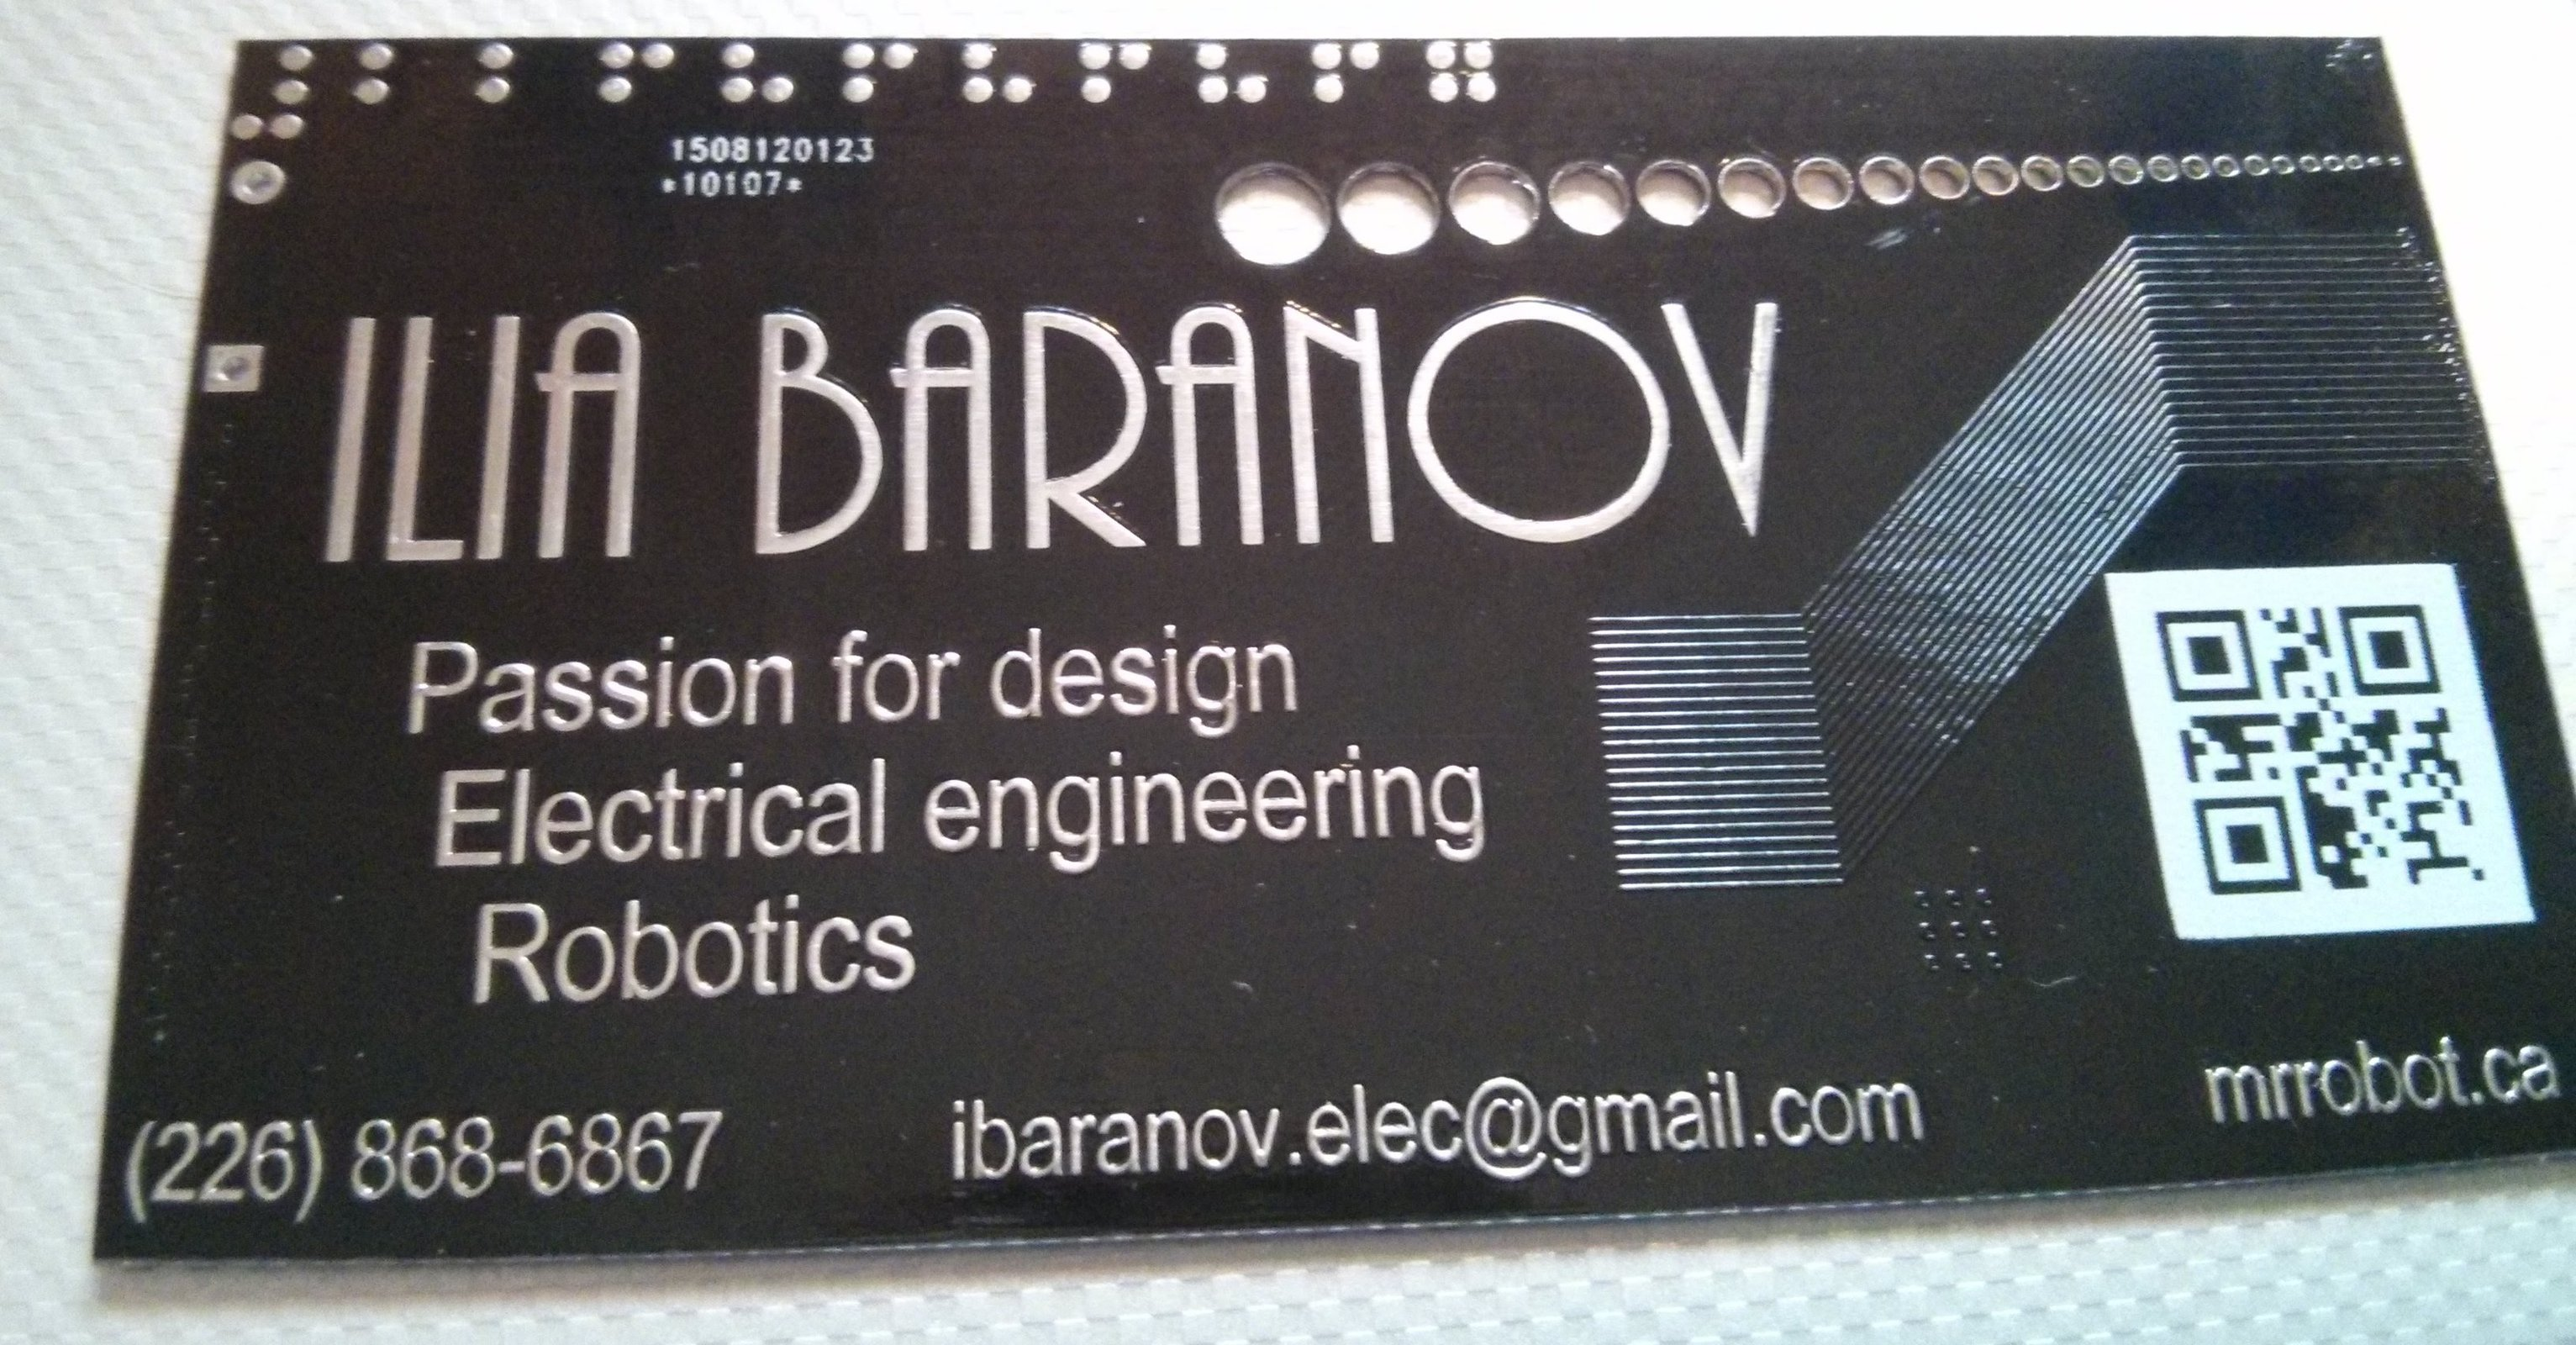 Enchanting Pcb Business Card Ensign Business Card Ideas Etadam Info